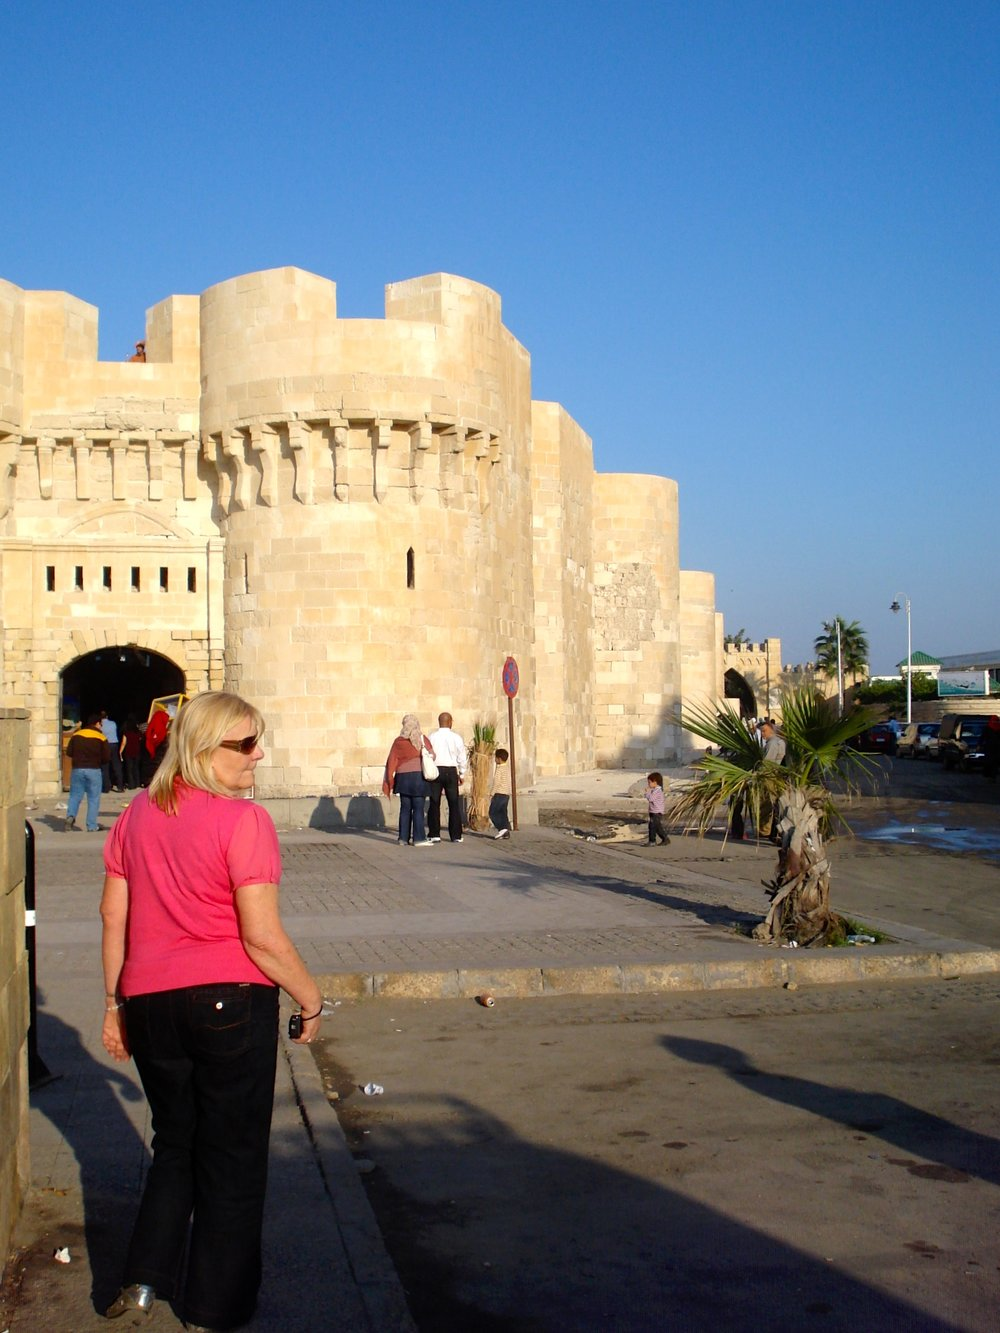 2010 in Alexandria at the Citadel of Qaitbay